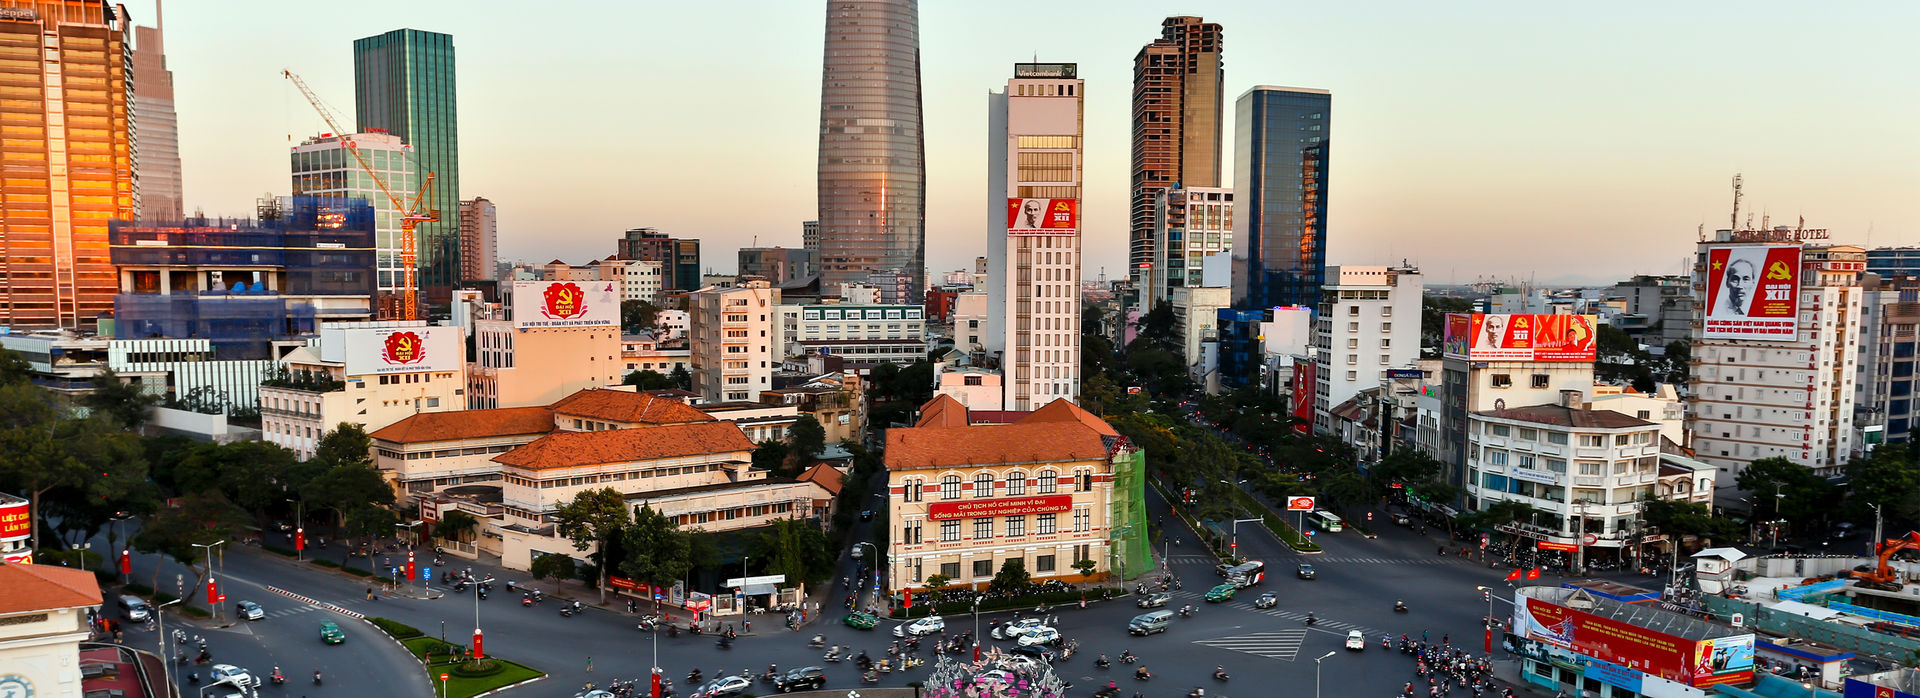 24 hours in Saigon